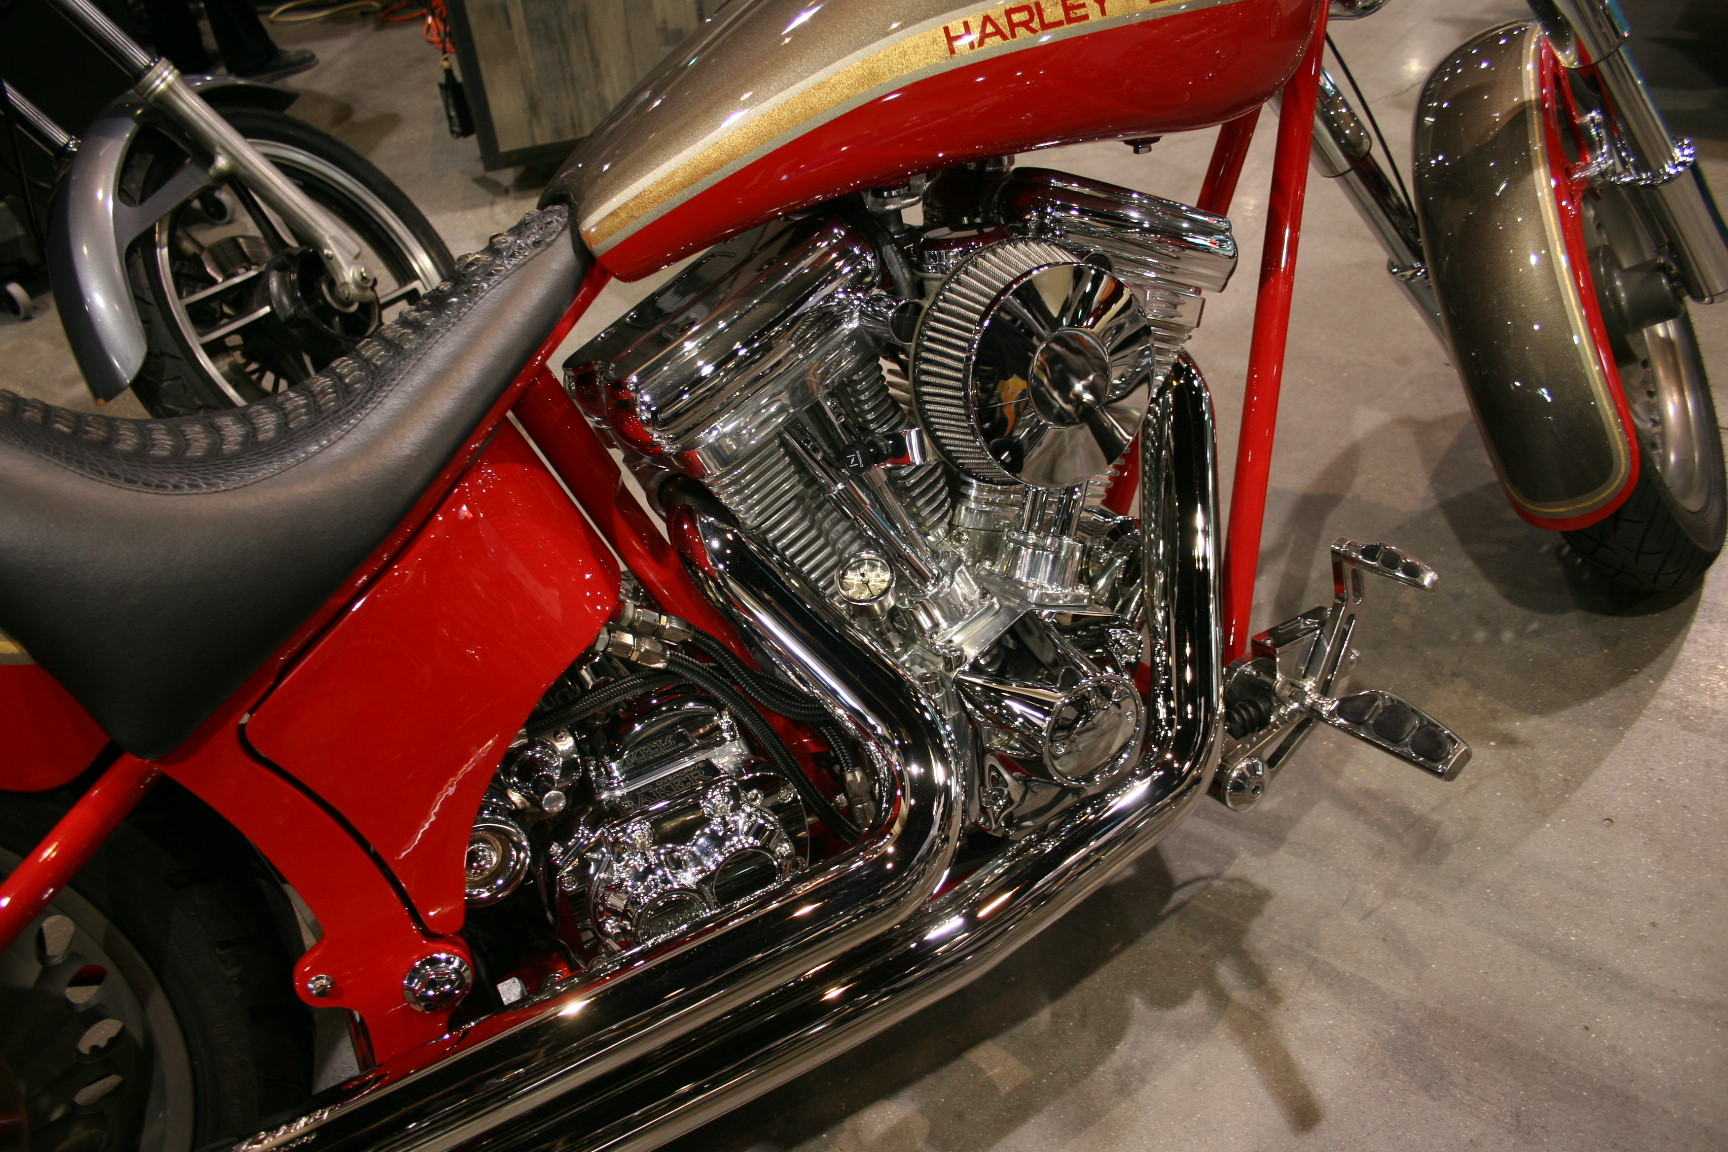 2nd Image of a 2001 HARLEY MOTORCYCLE